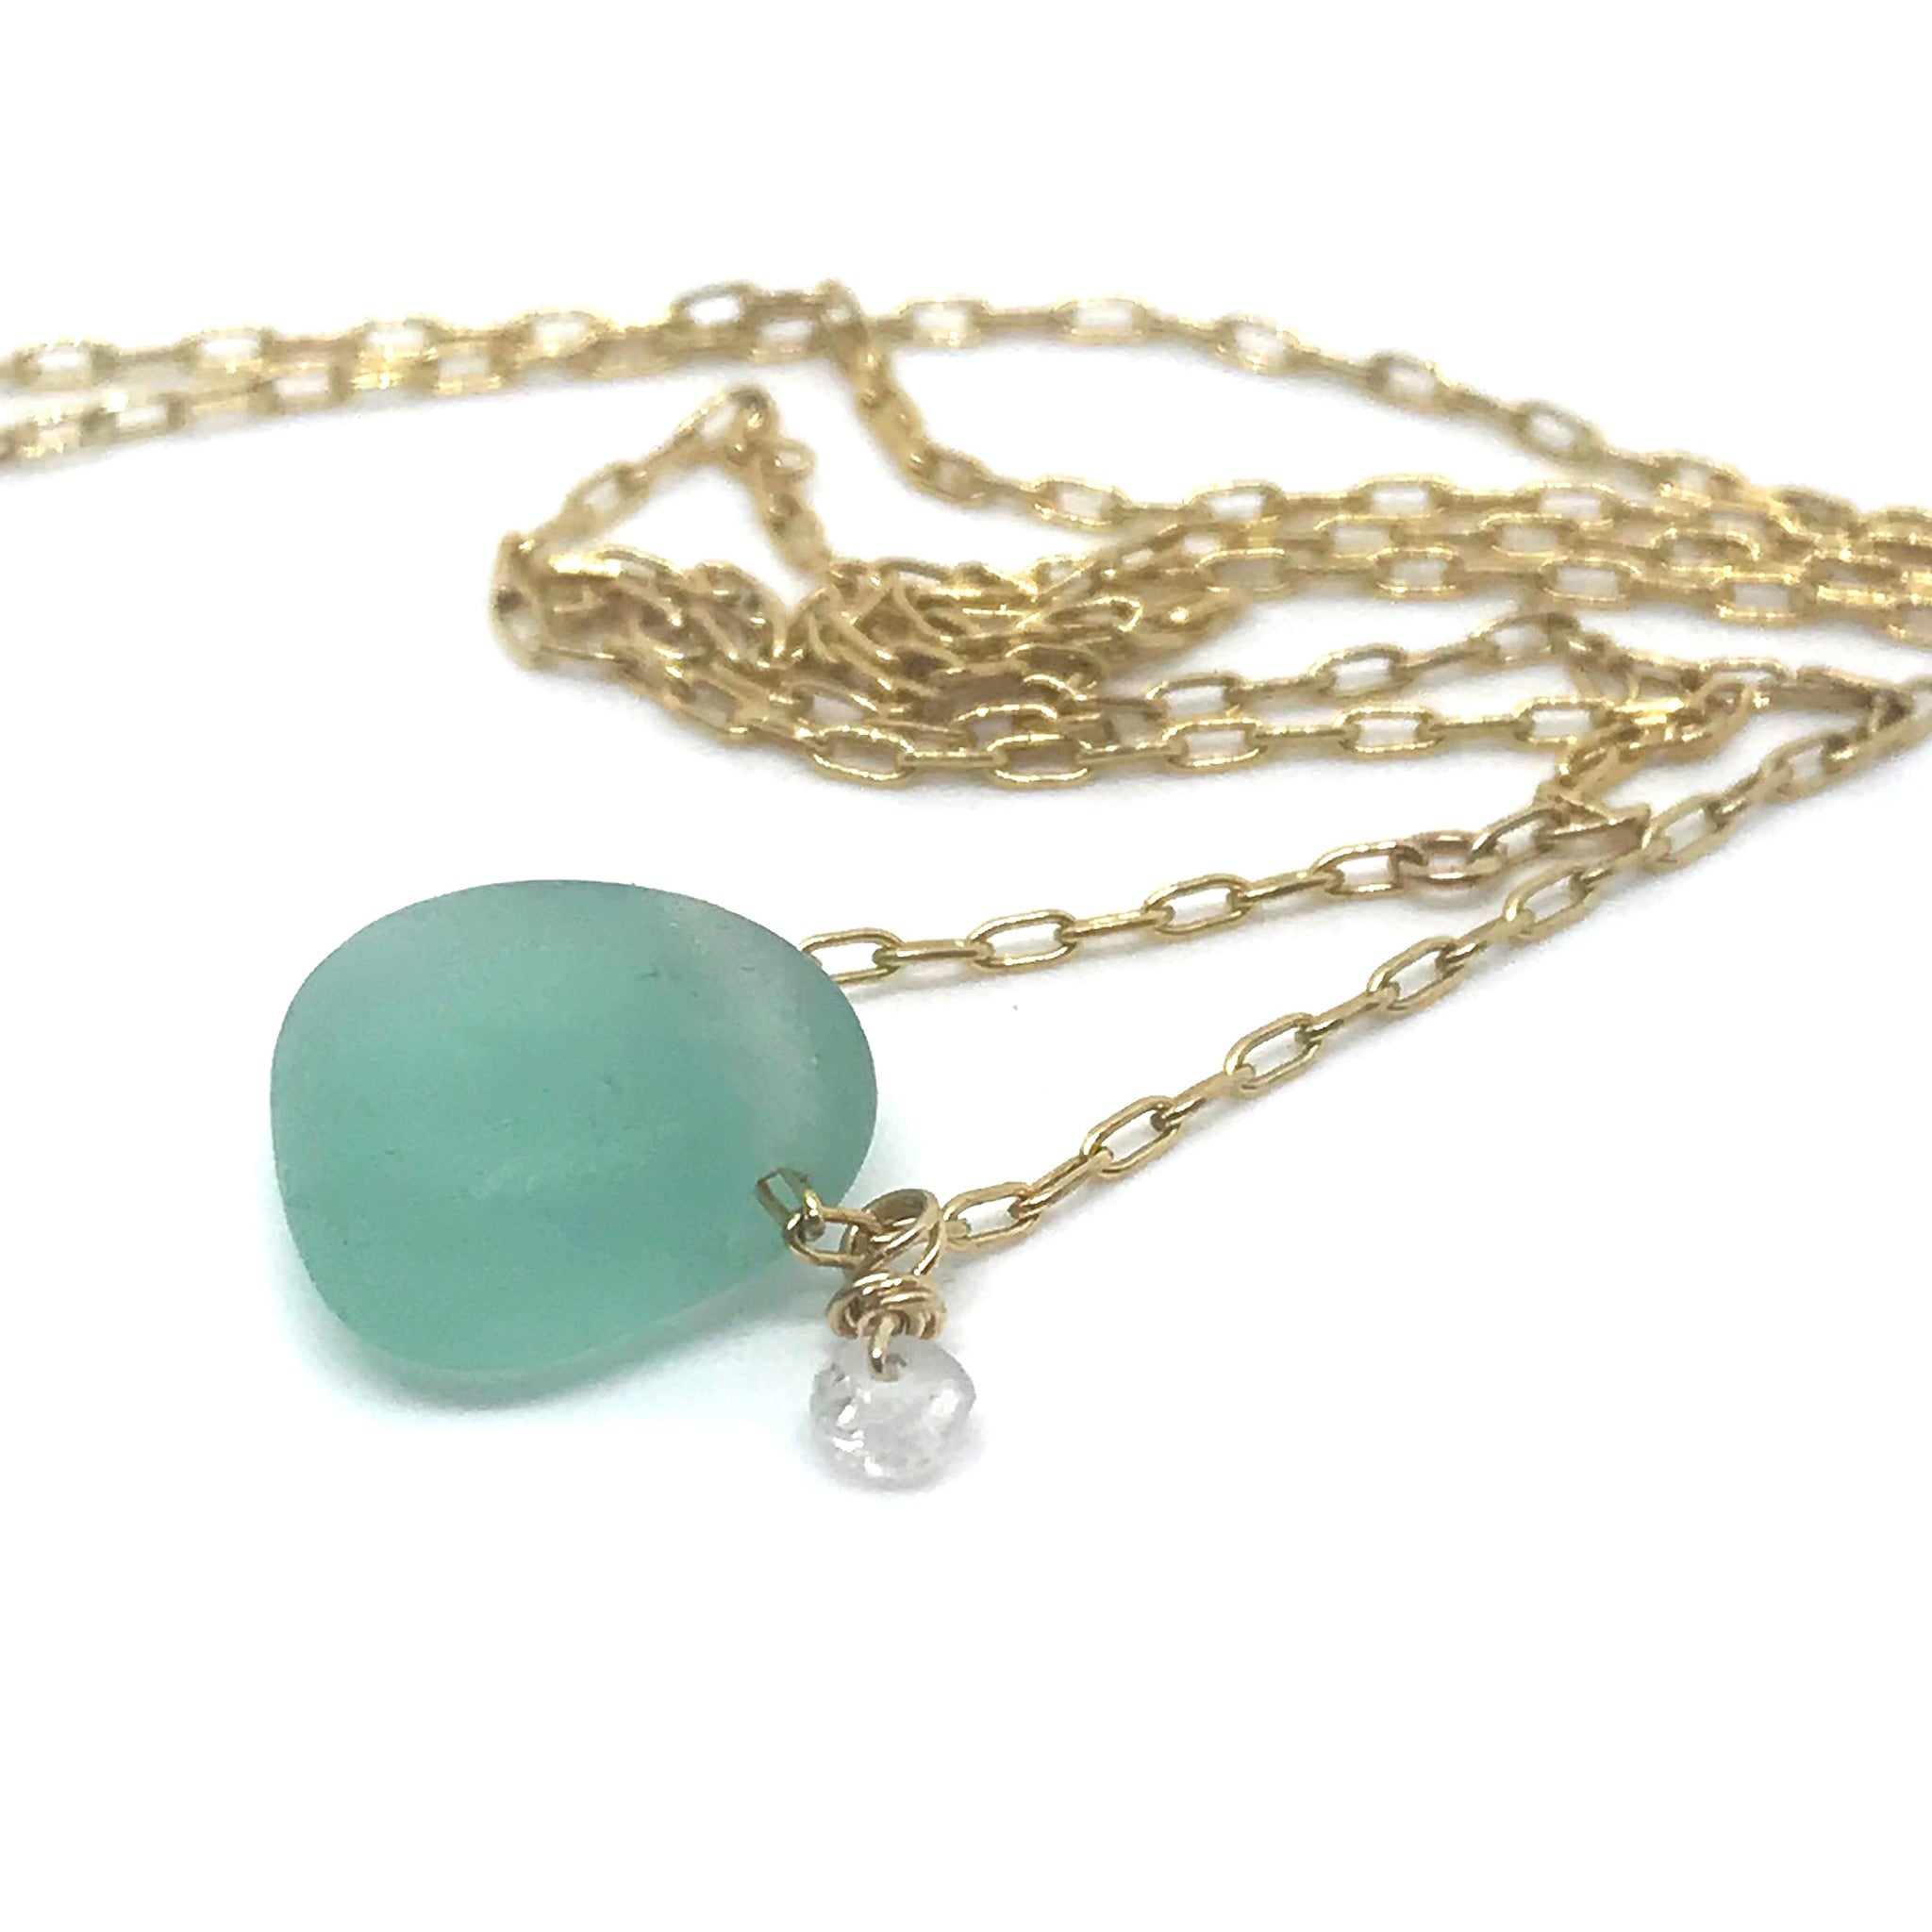 Aqua Seaglass Necklace on Short Gold chain - kriket-broadhurst seaglass jewellery